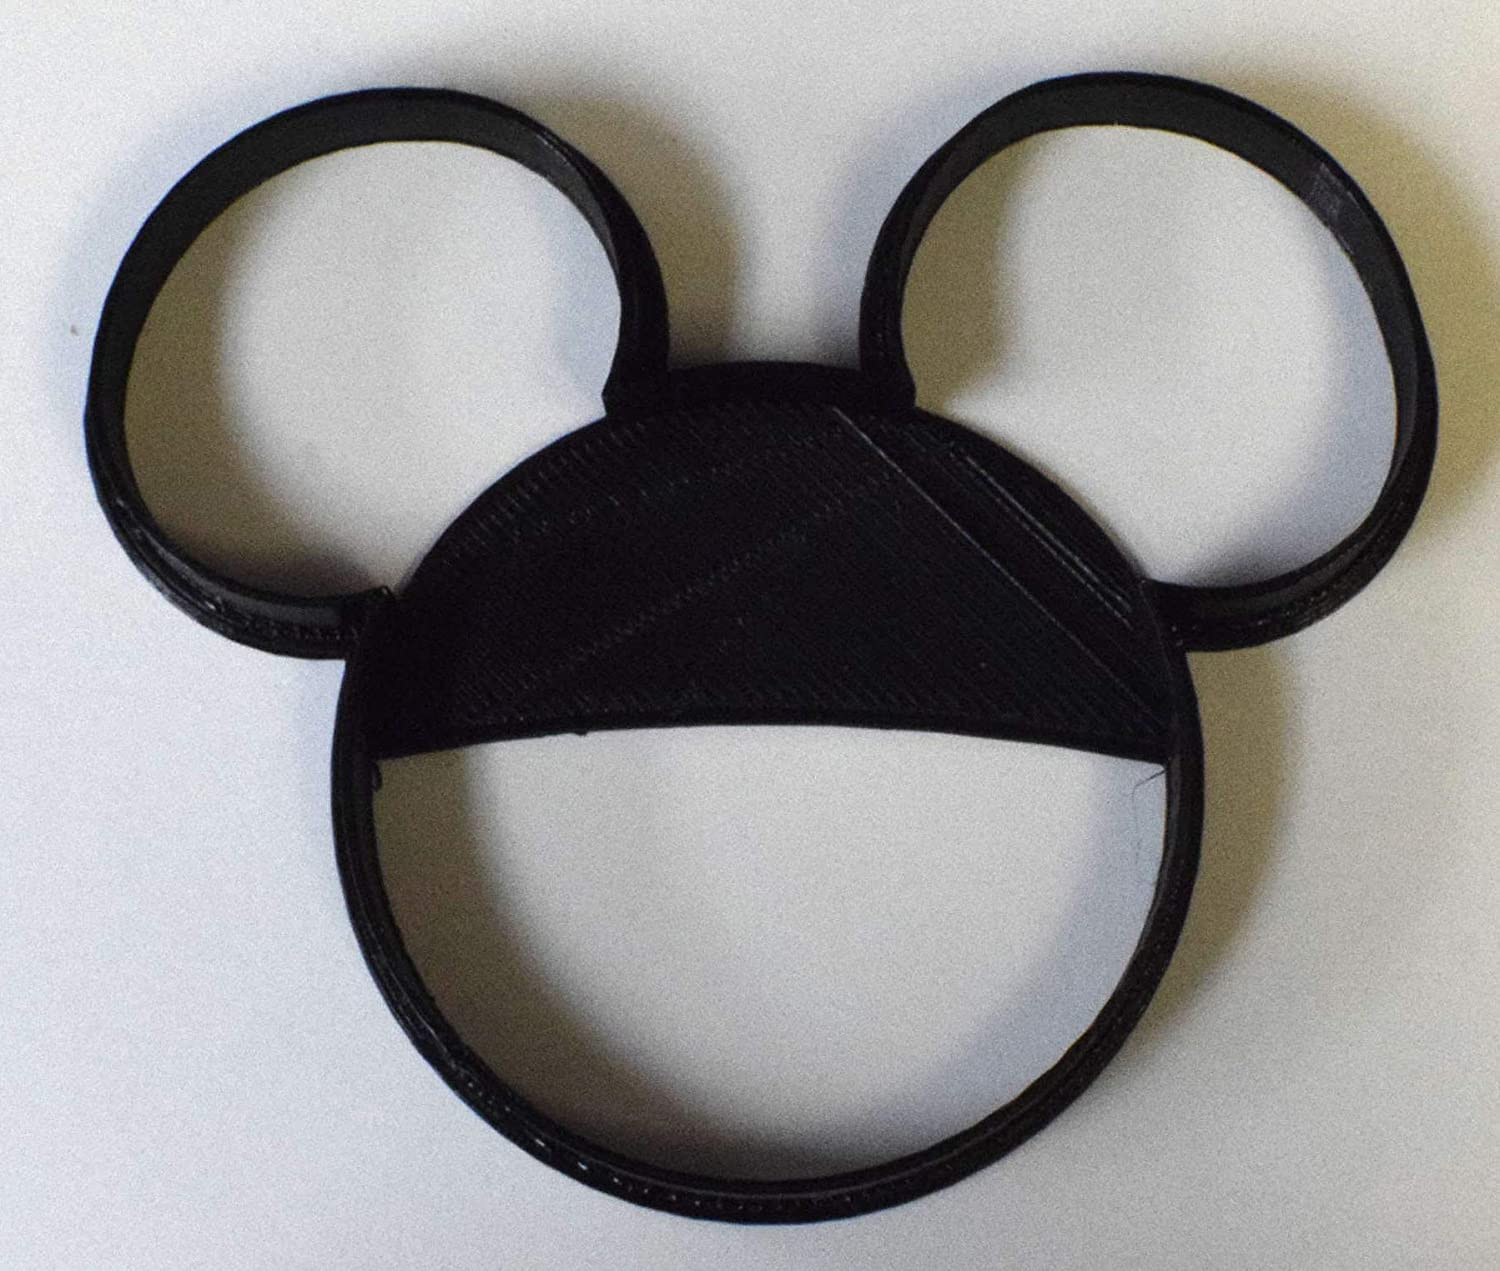 MICKEY MOUSE HEAD CARTOON CHARACTER COOKIE CUTTER FONDANT BAKING TOOL USA PR528S